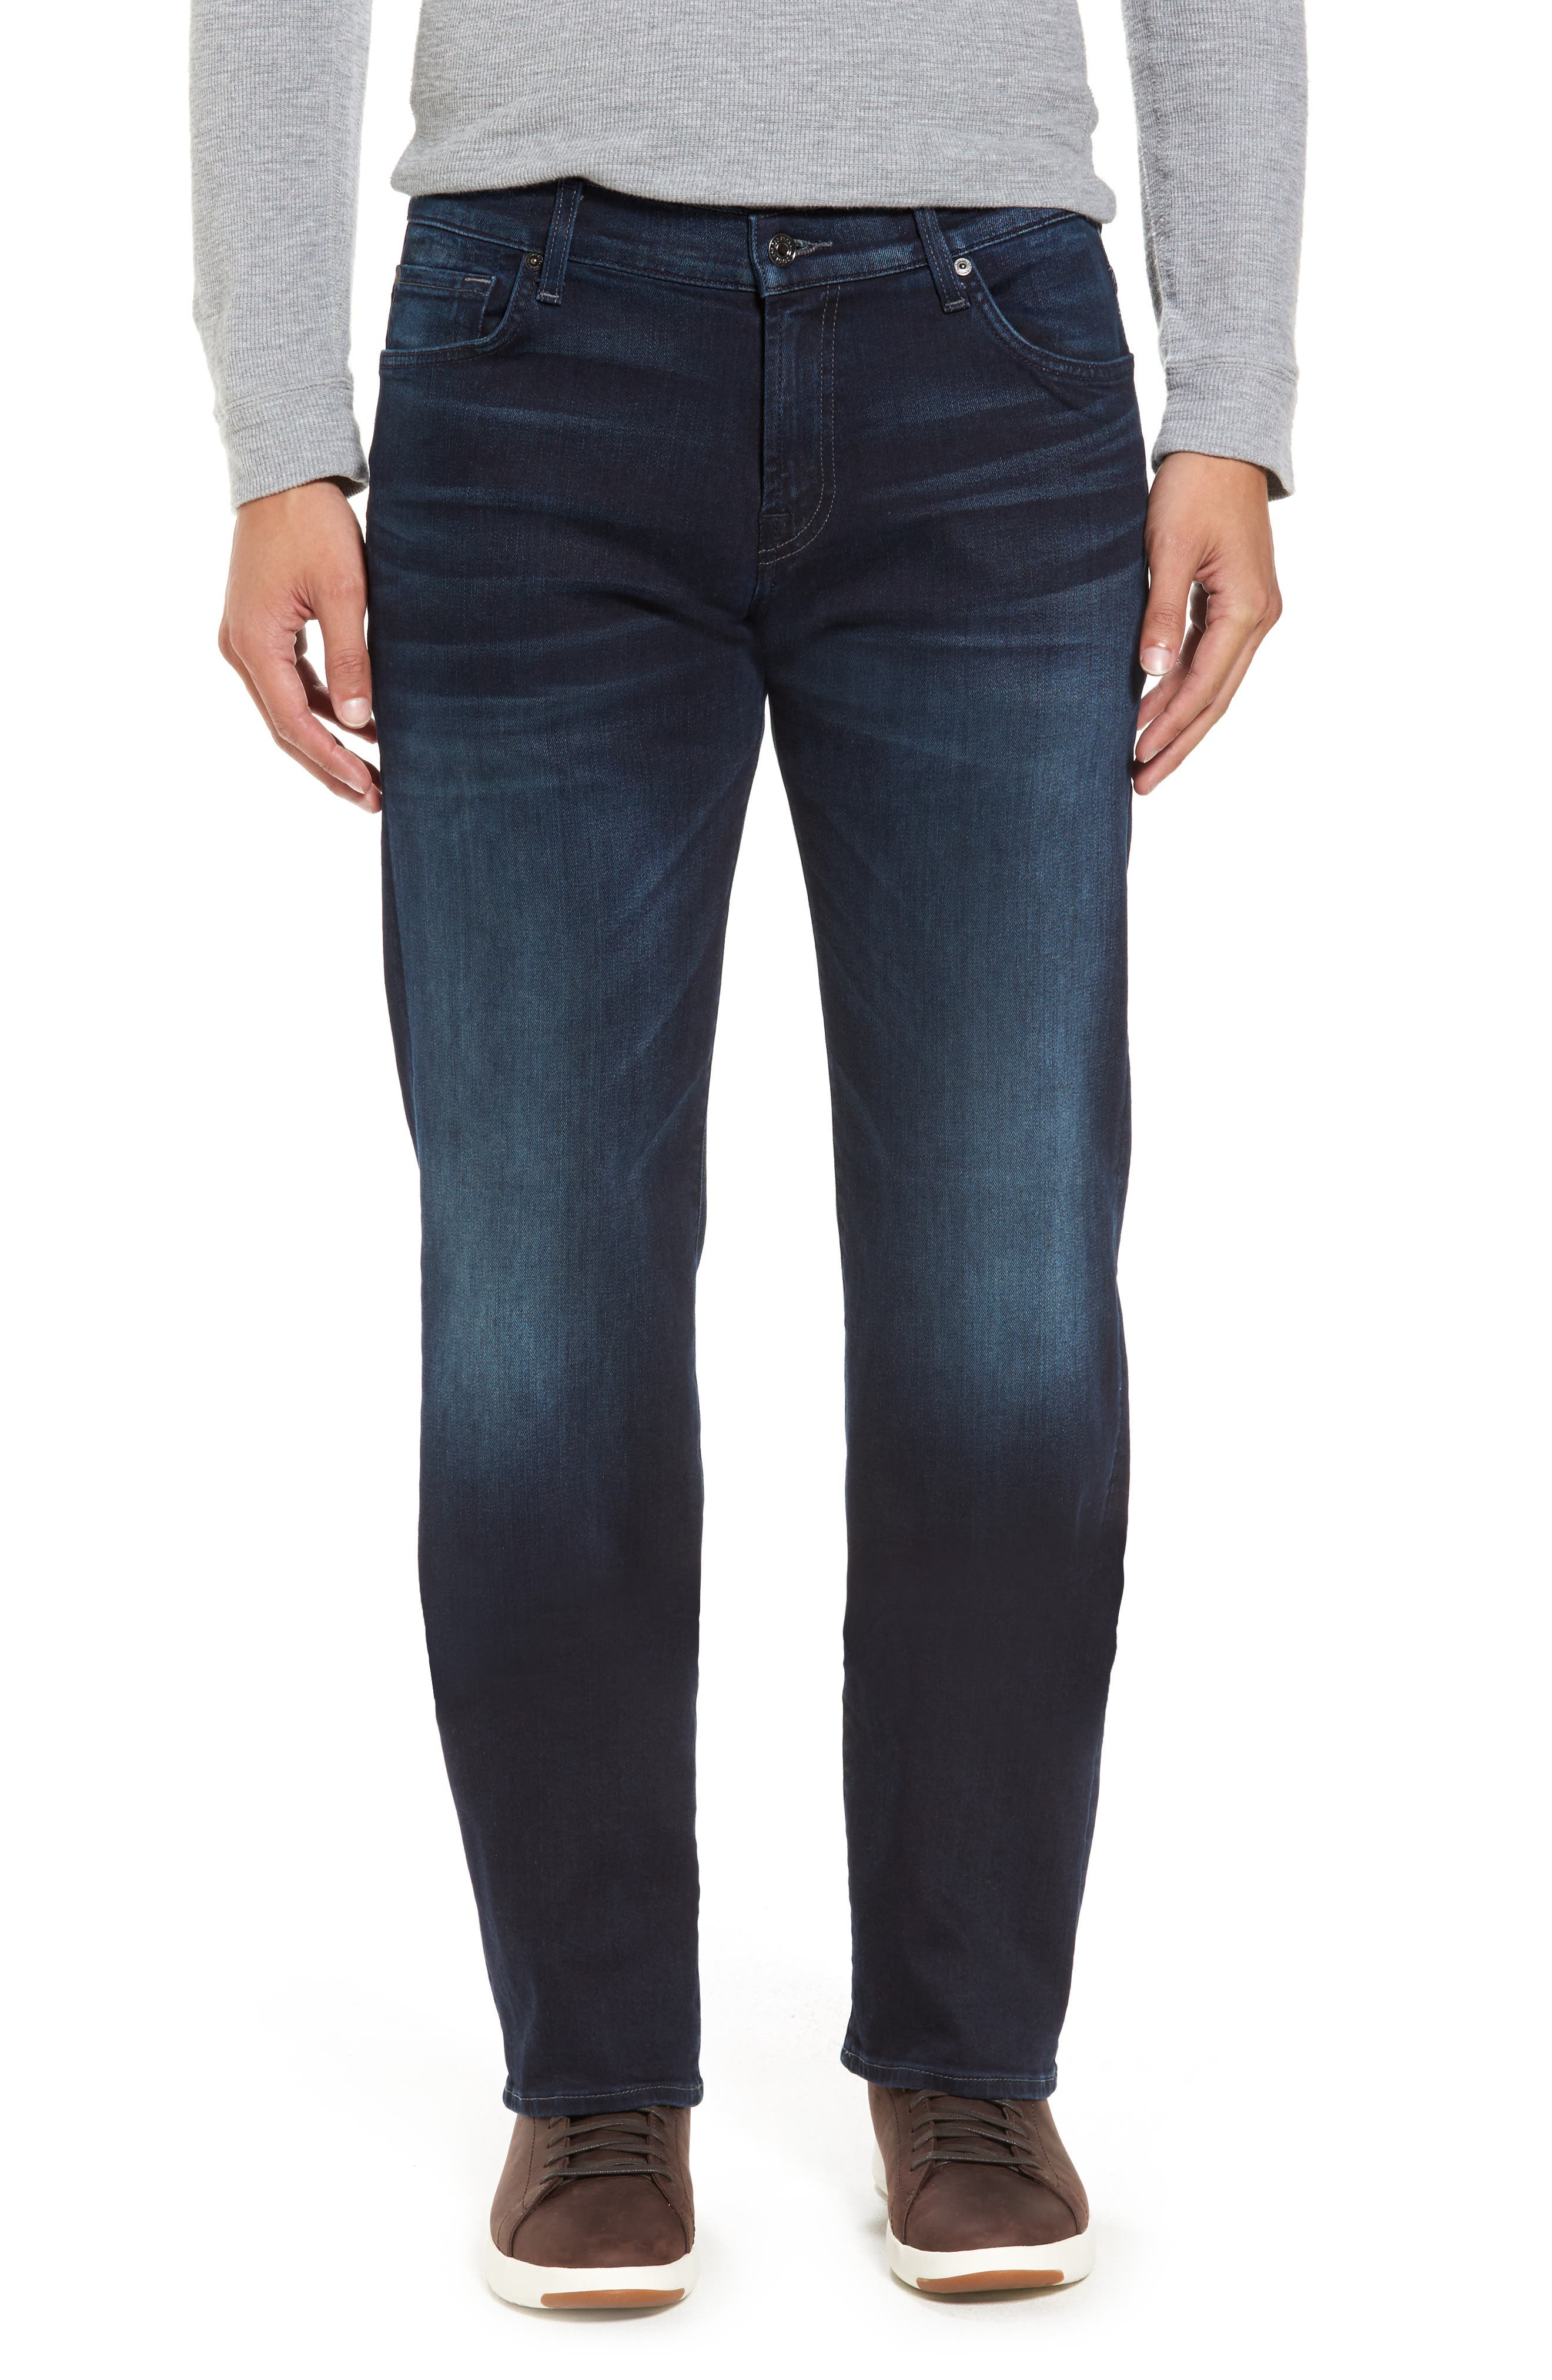 Austyn Relaxed Fit Jeans,                         Main,                         color,